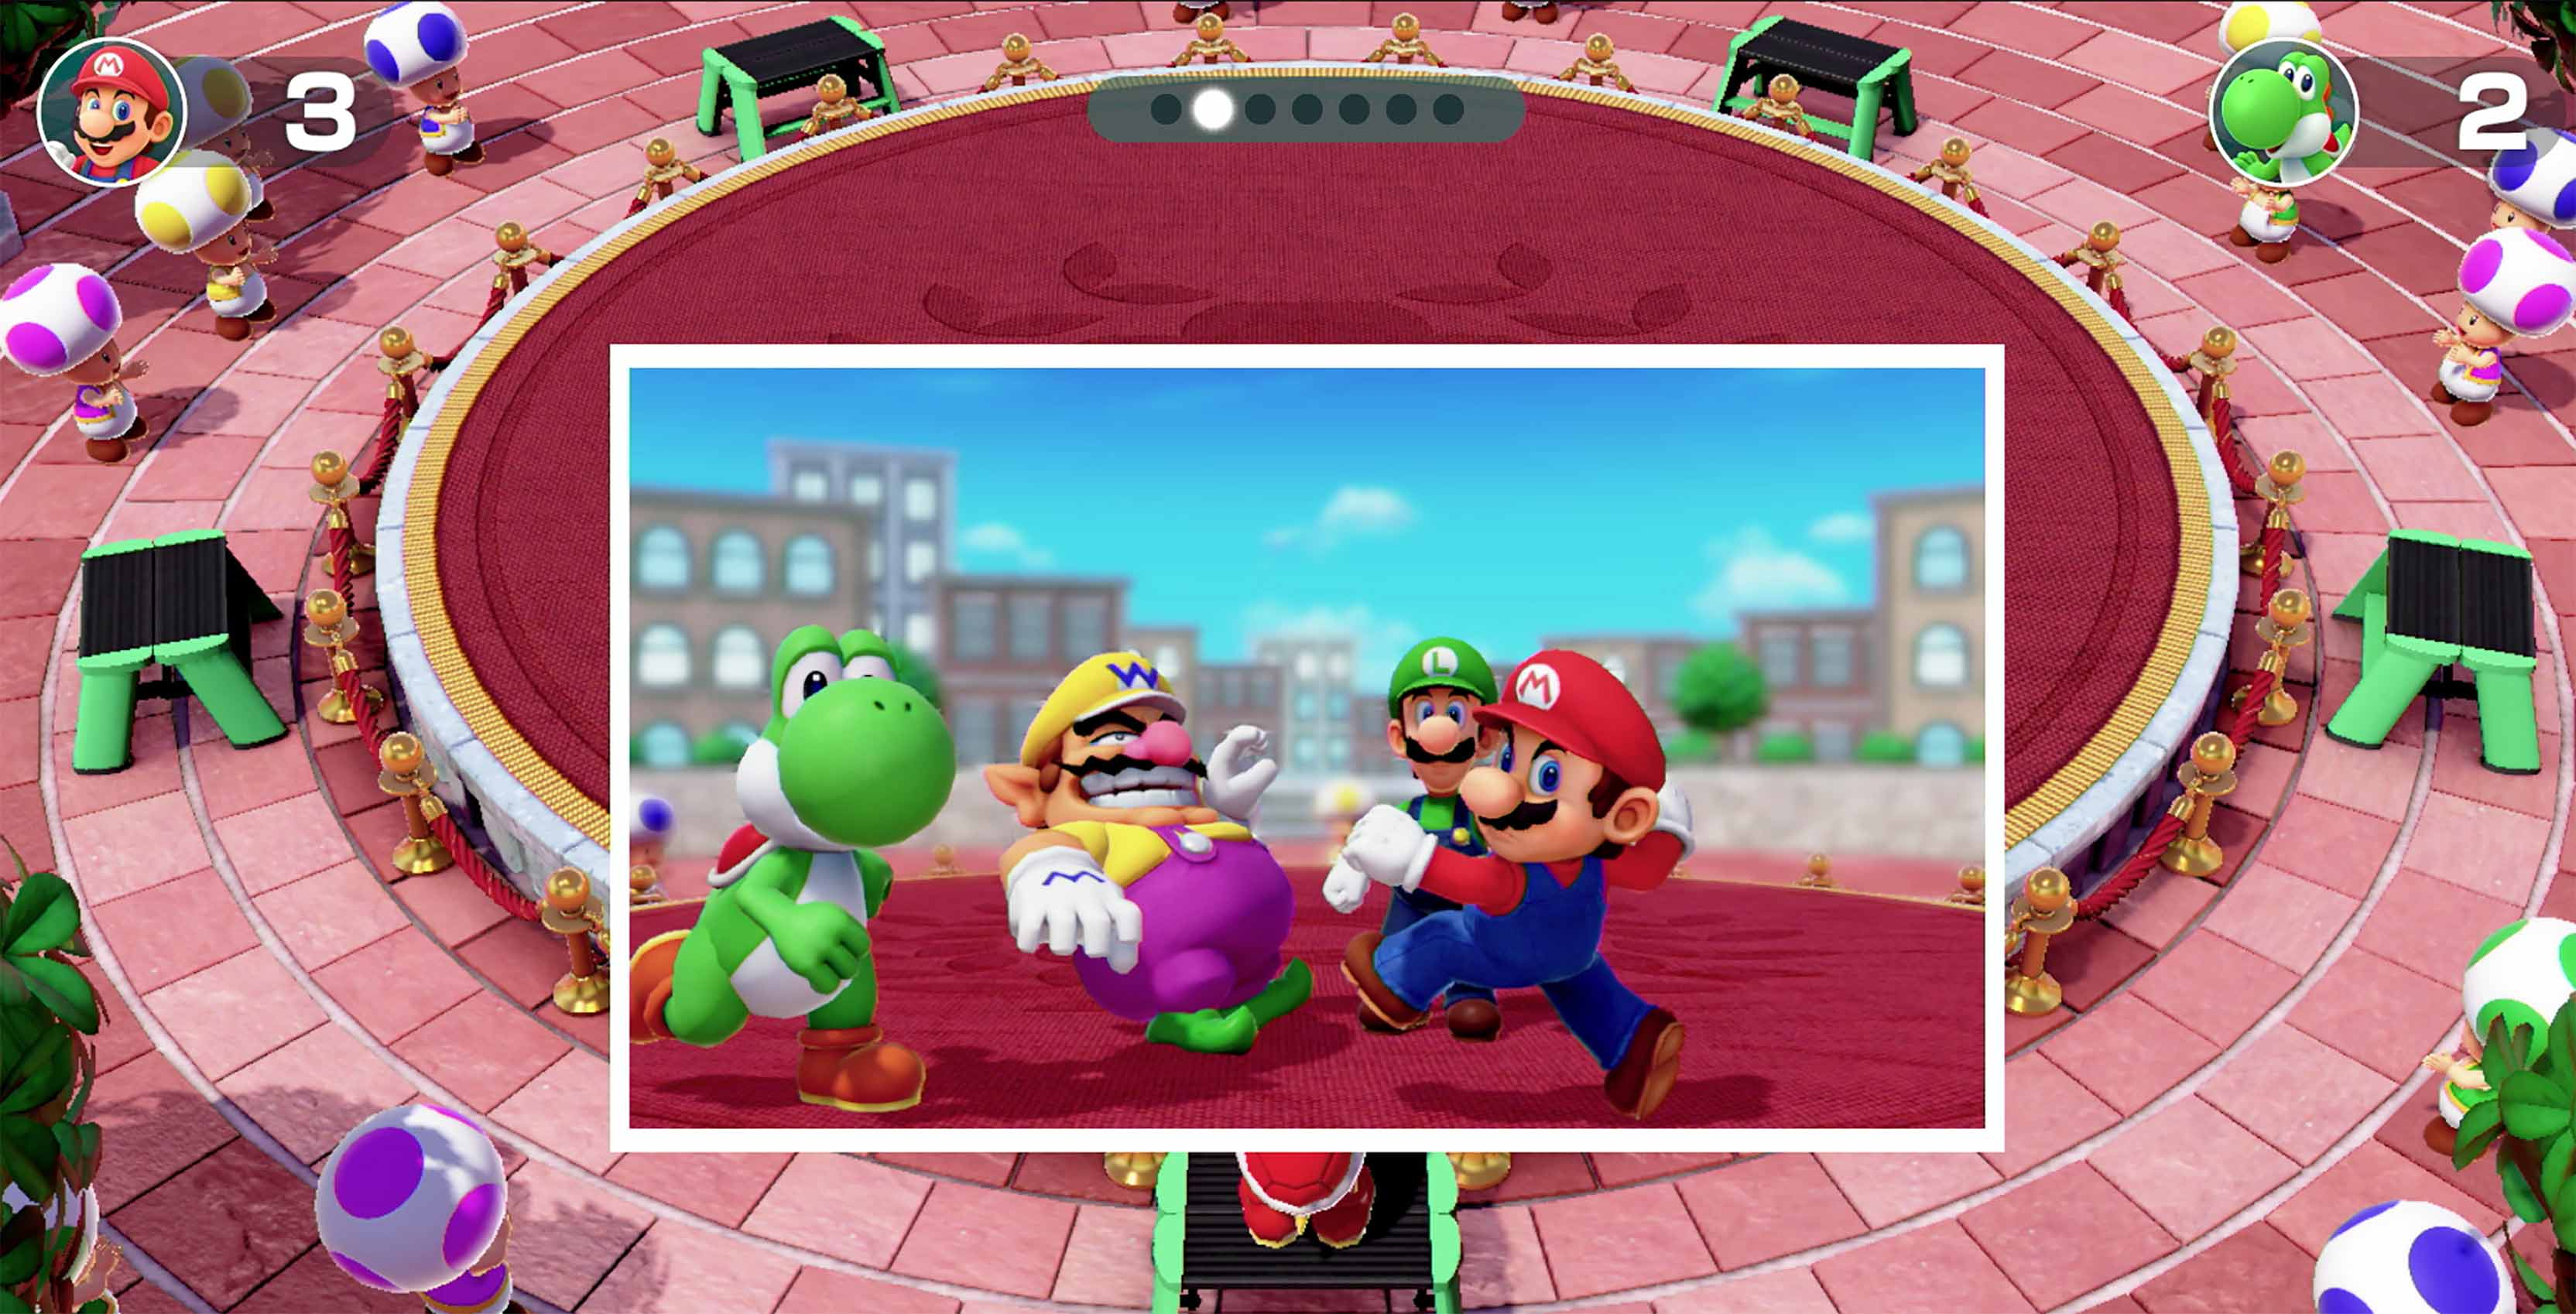 Super Mario Party characters